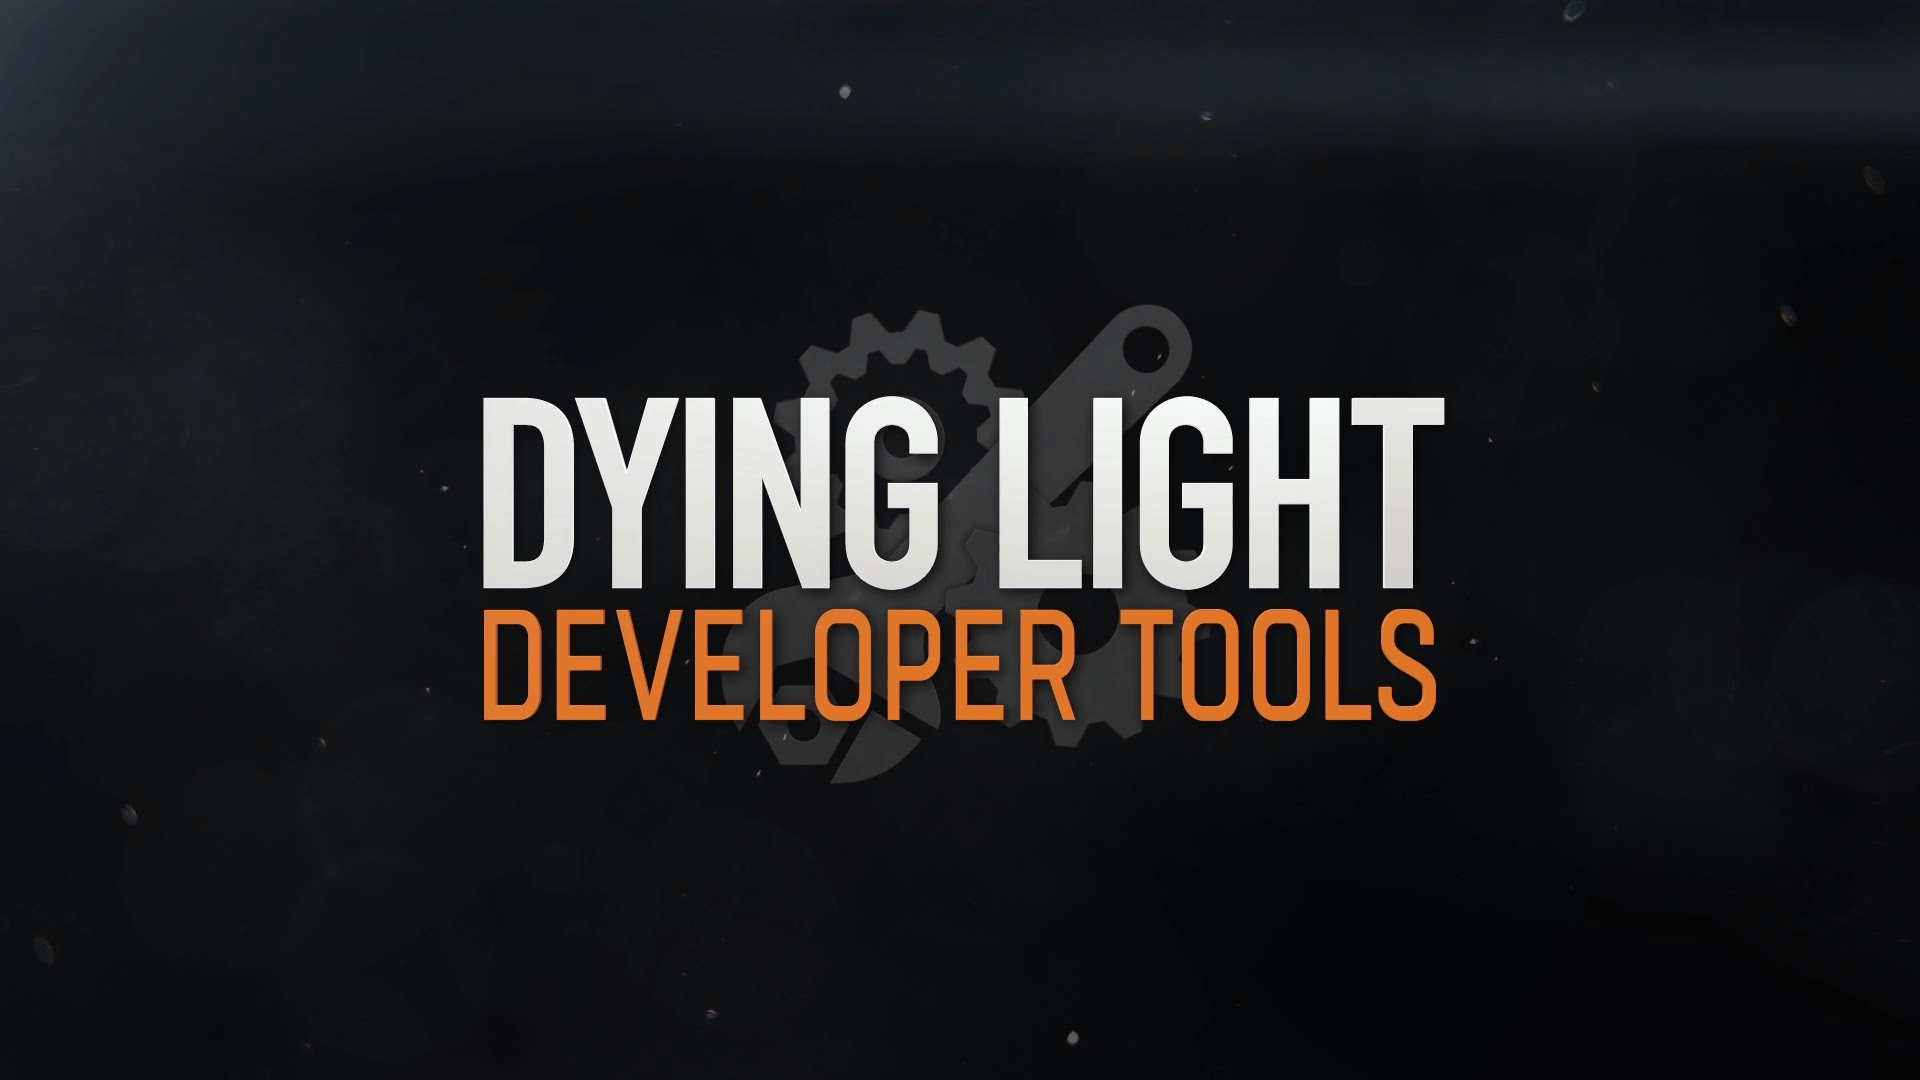 Dying Light Developer Tools Released Post Banner